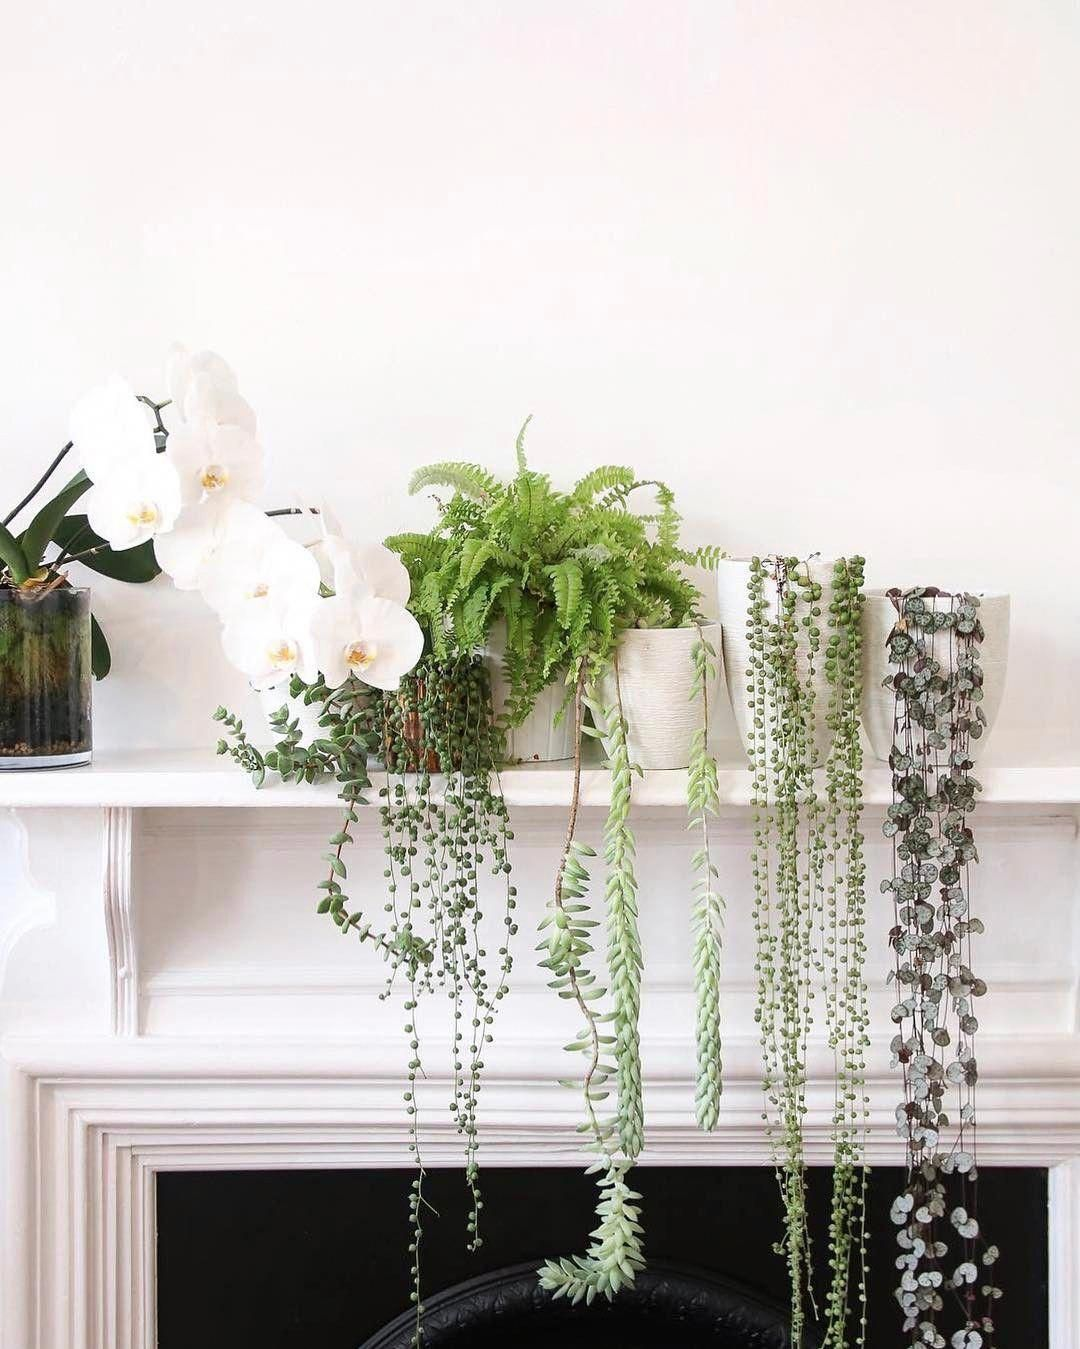 Pin On Plants For Home